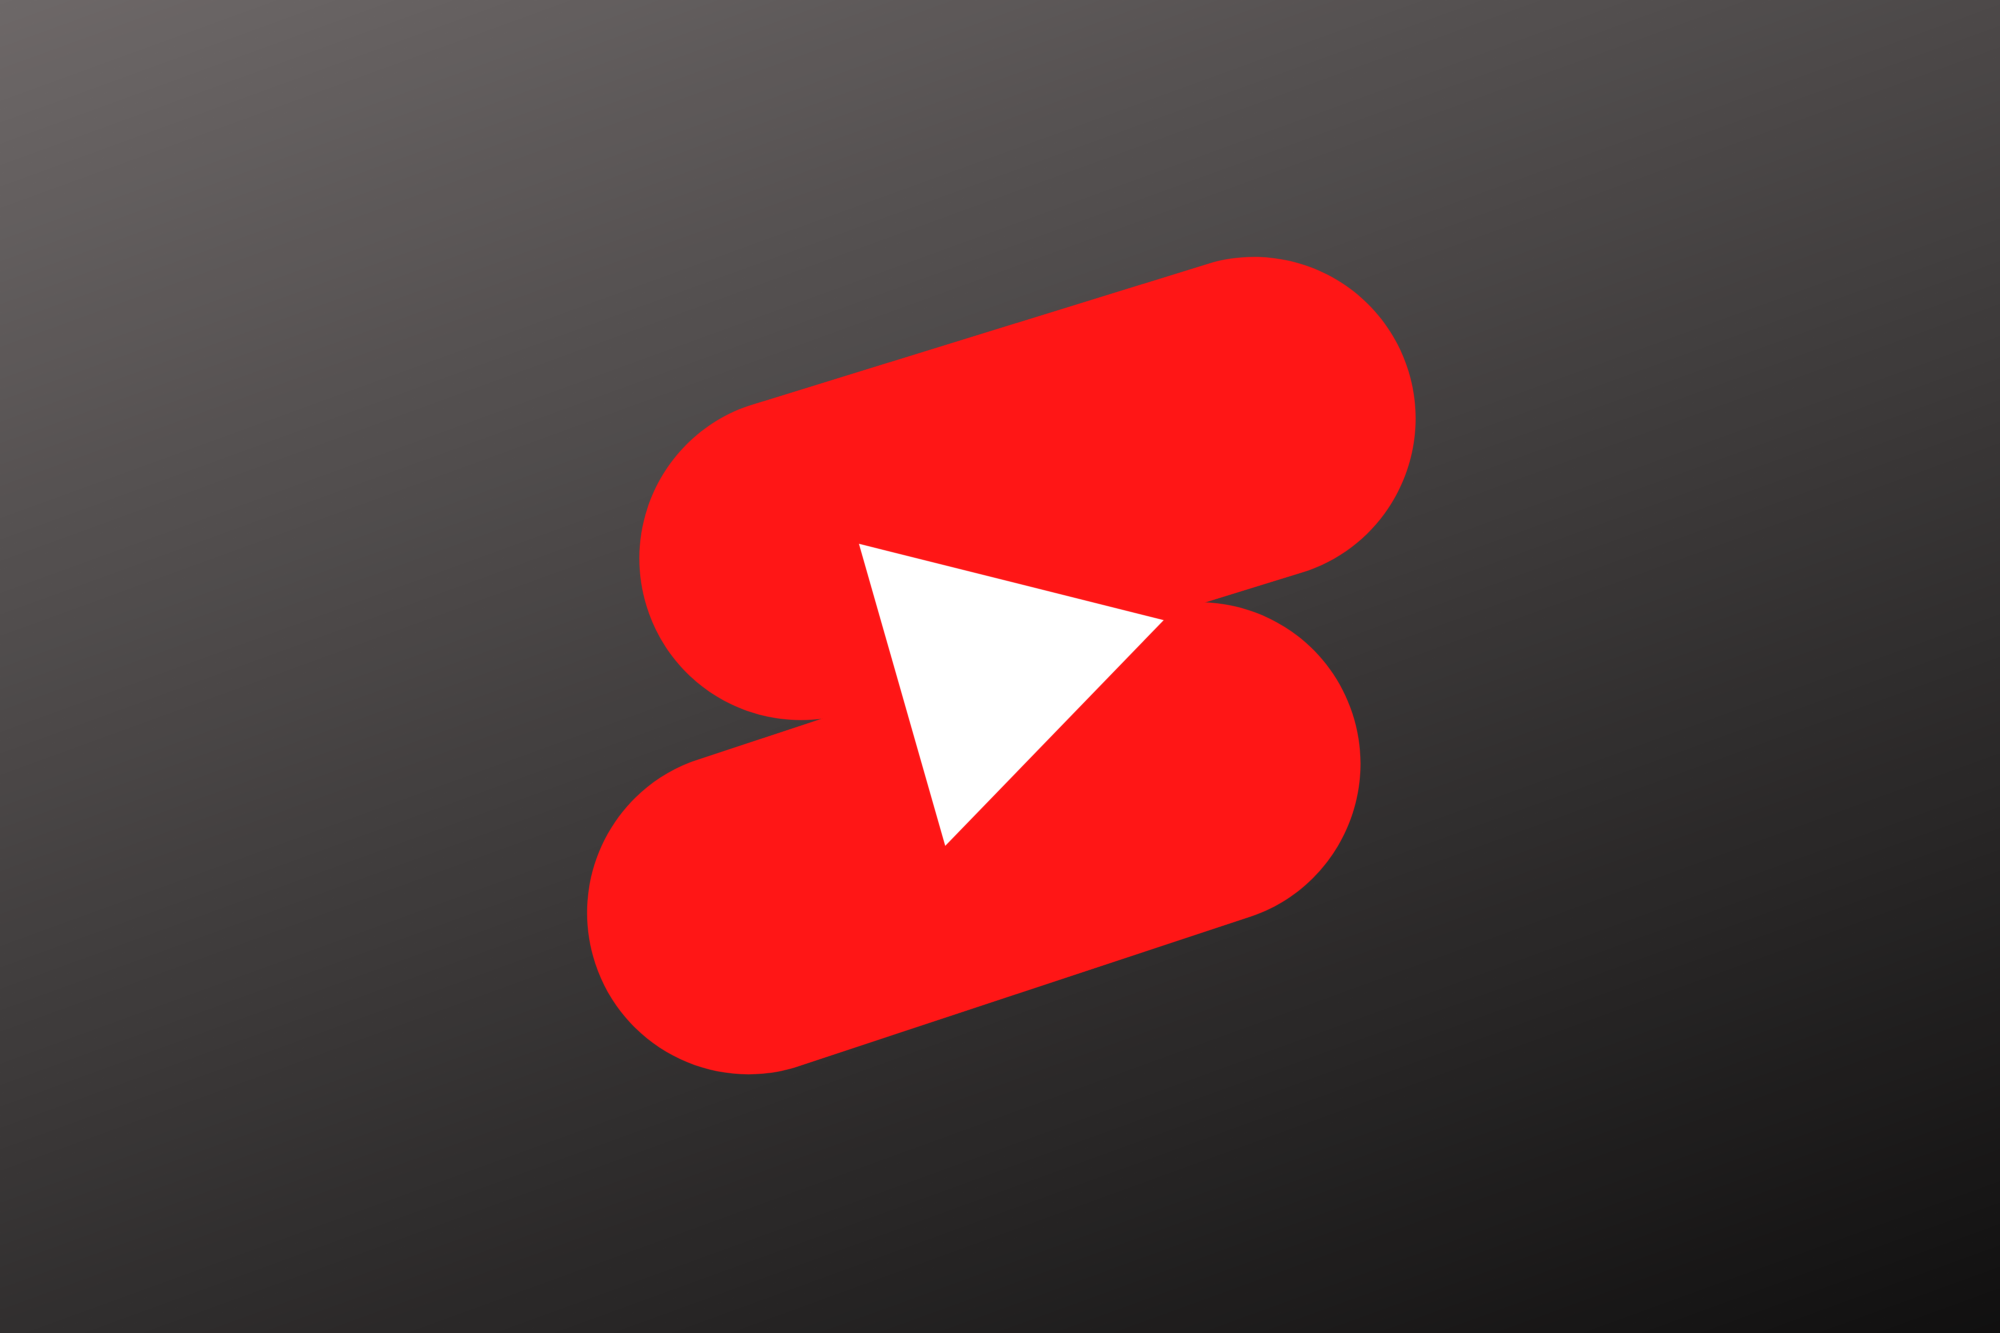 YouTube logo for Shorts in a black background.